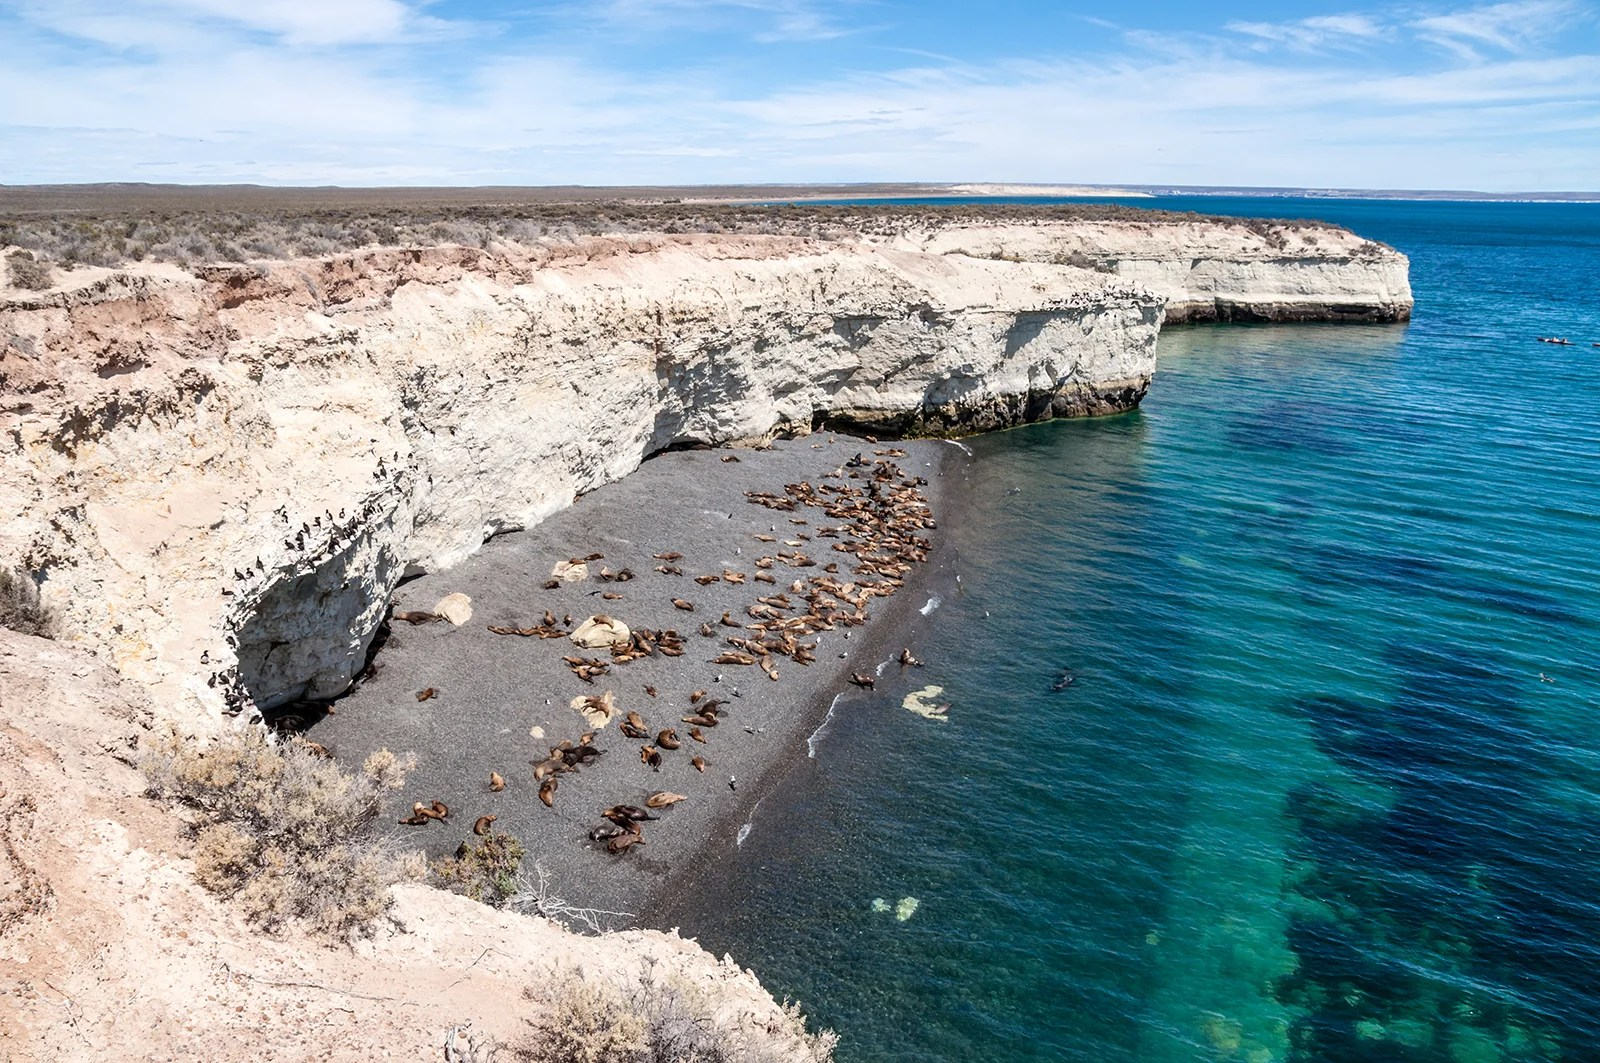 A colony of sea lions on a beach south of Puerto Madryn, Argentina.